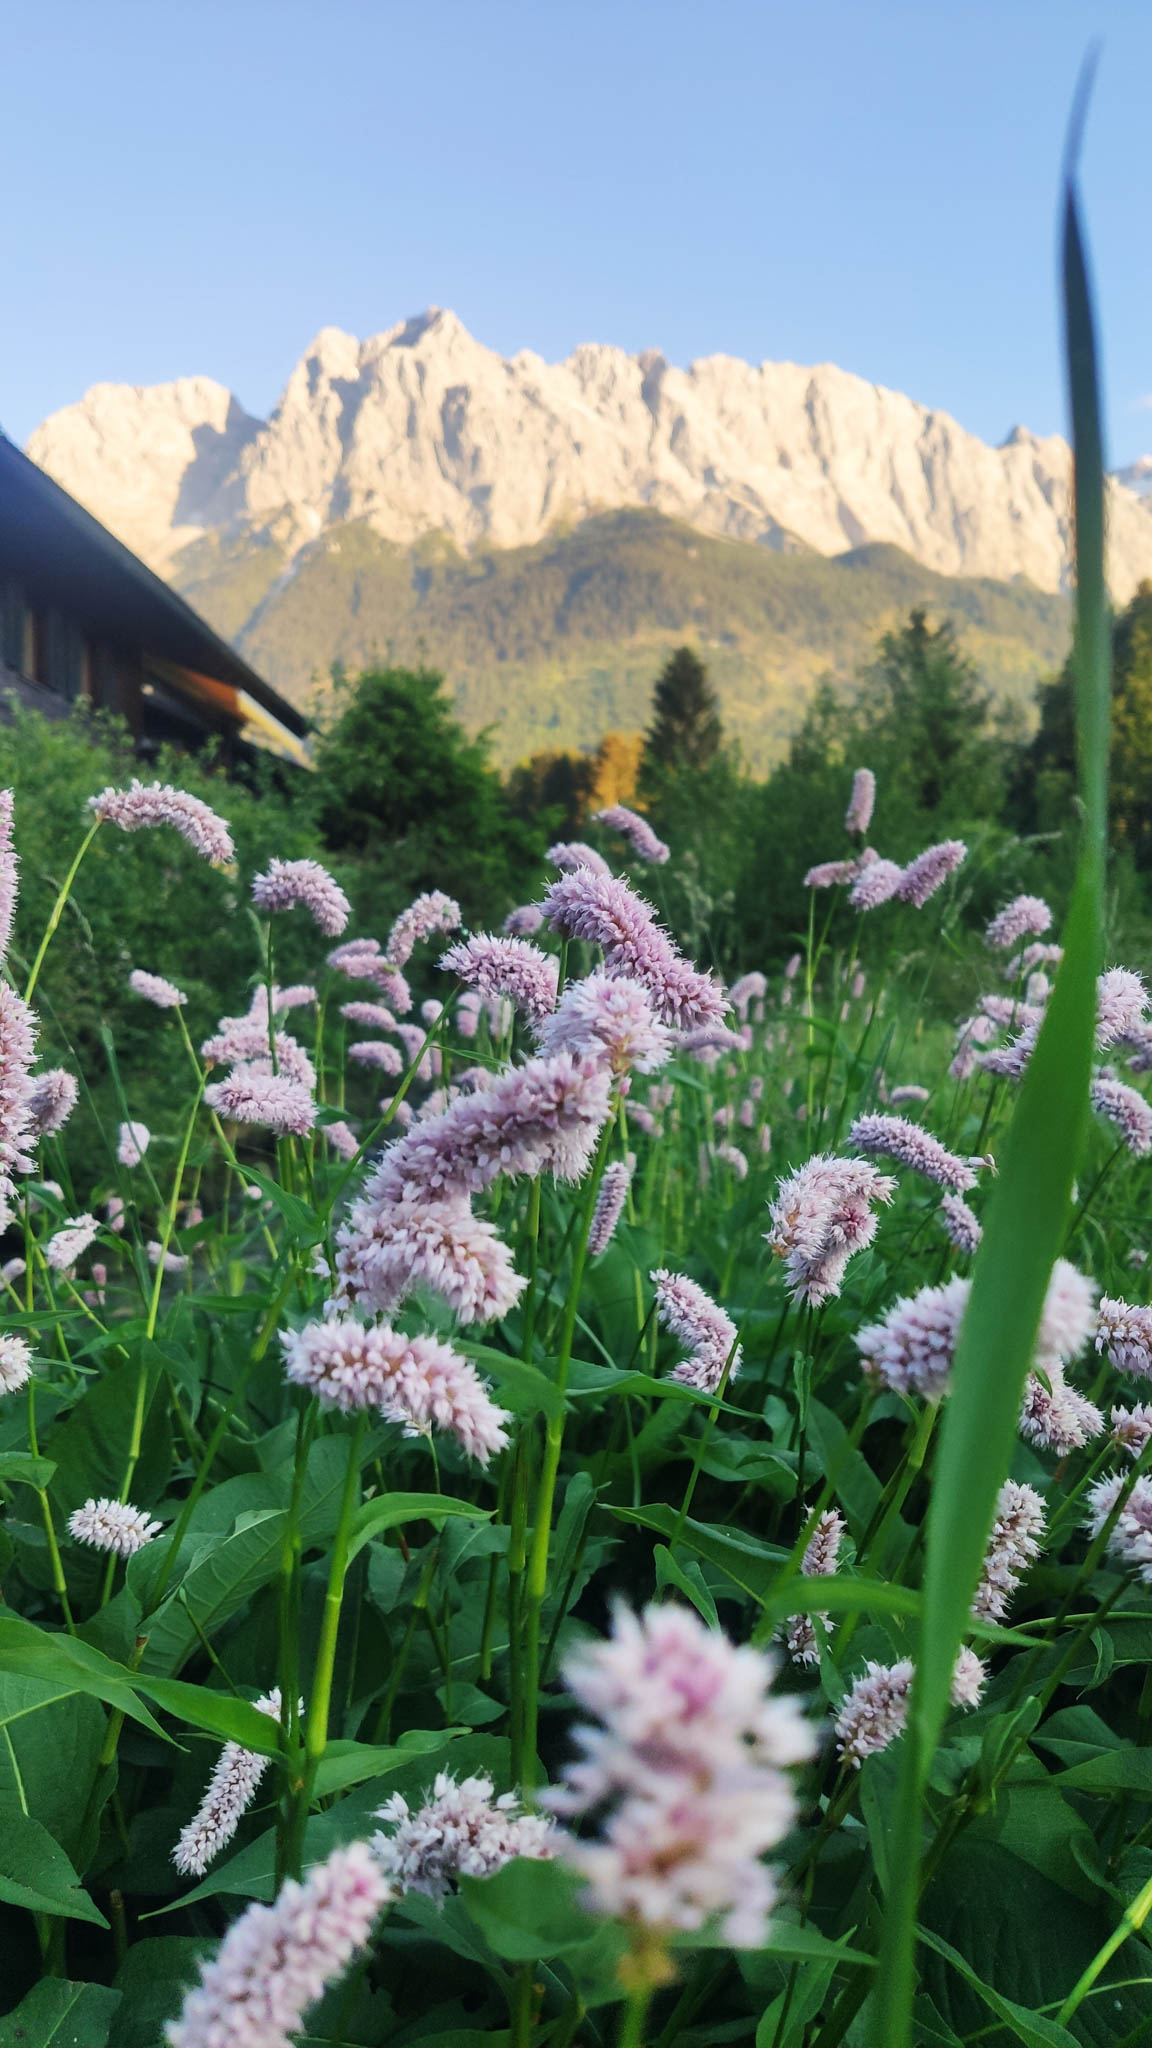 Sunset view with flowers at Eibsee